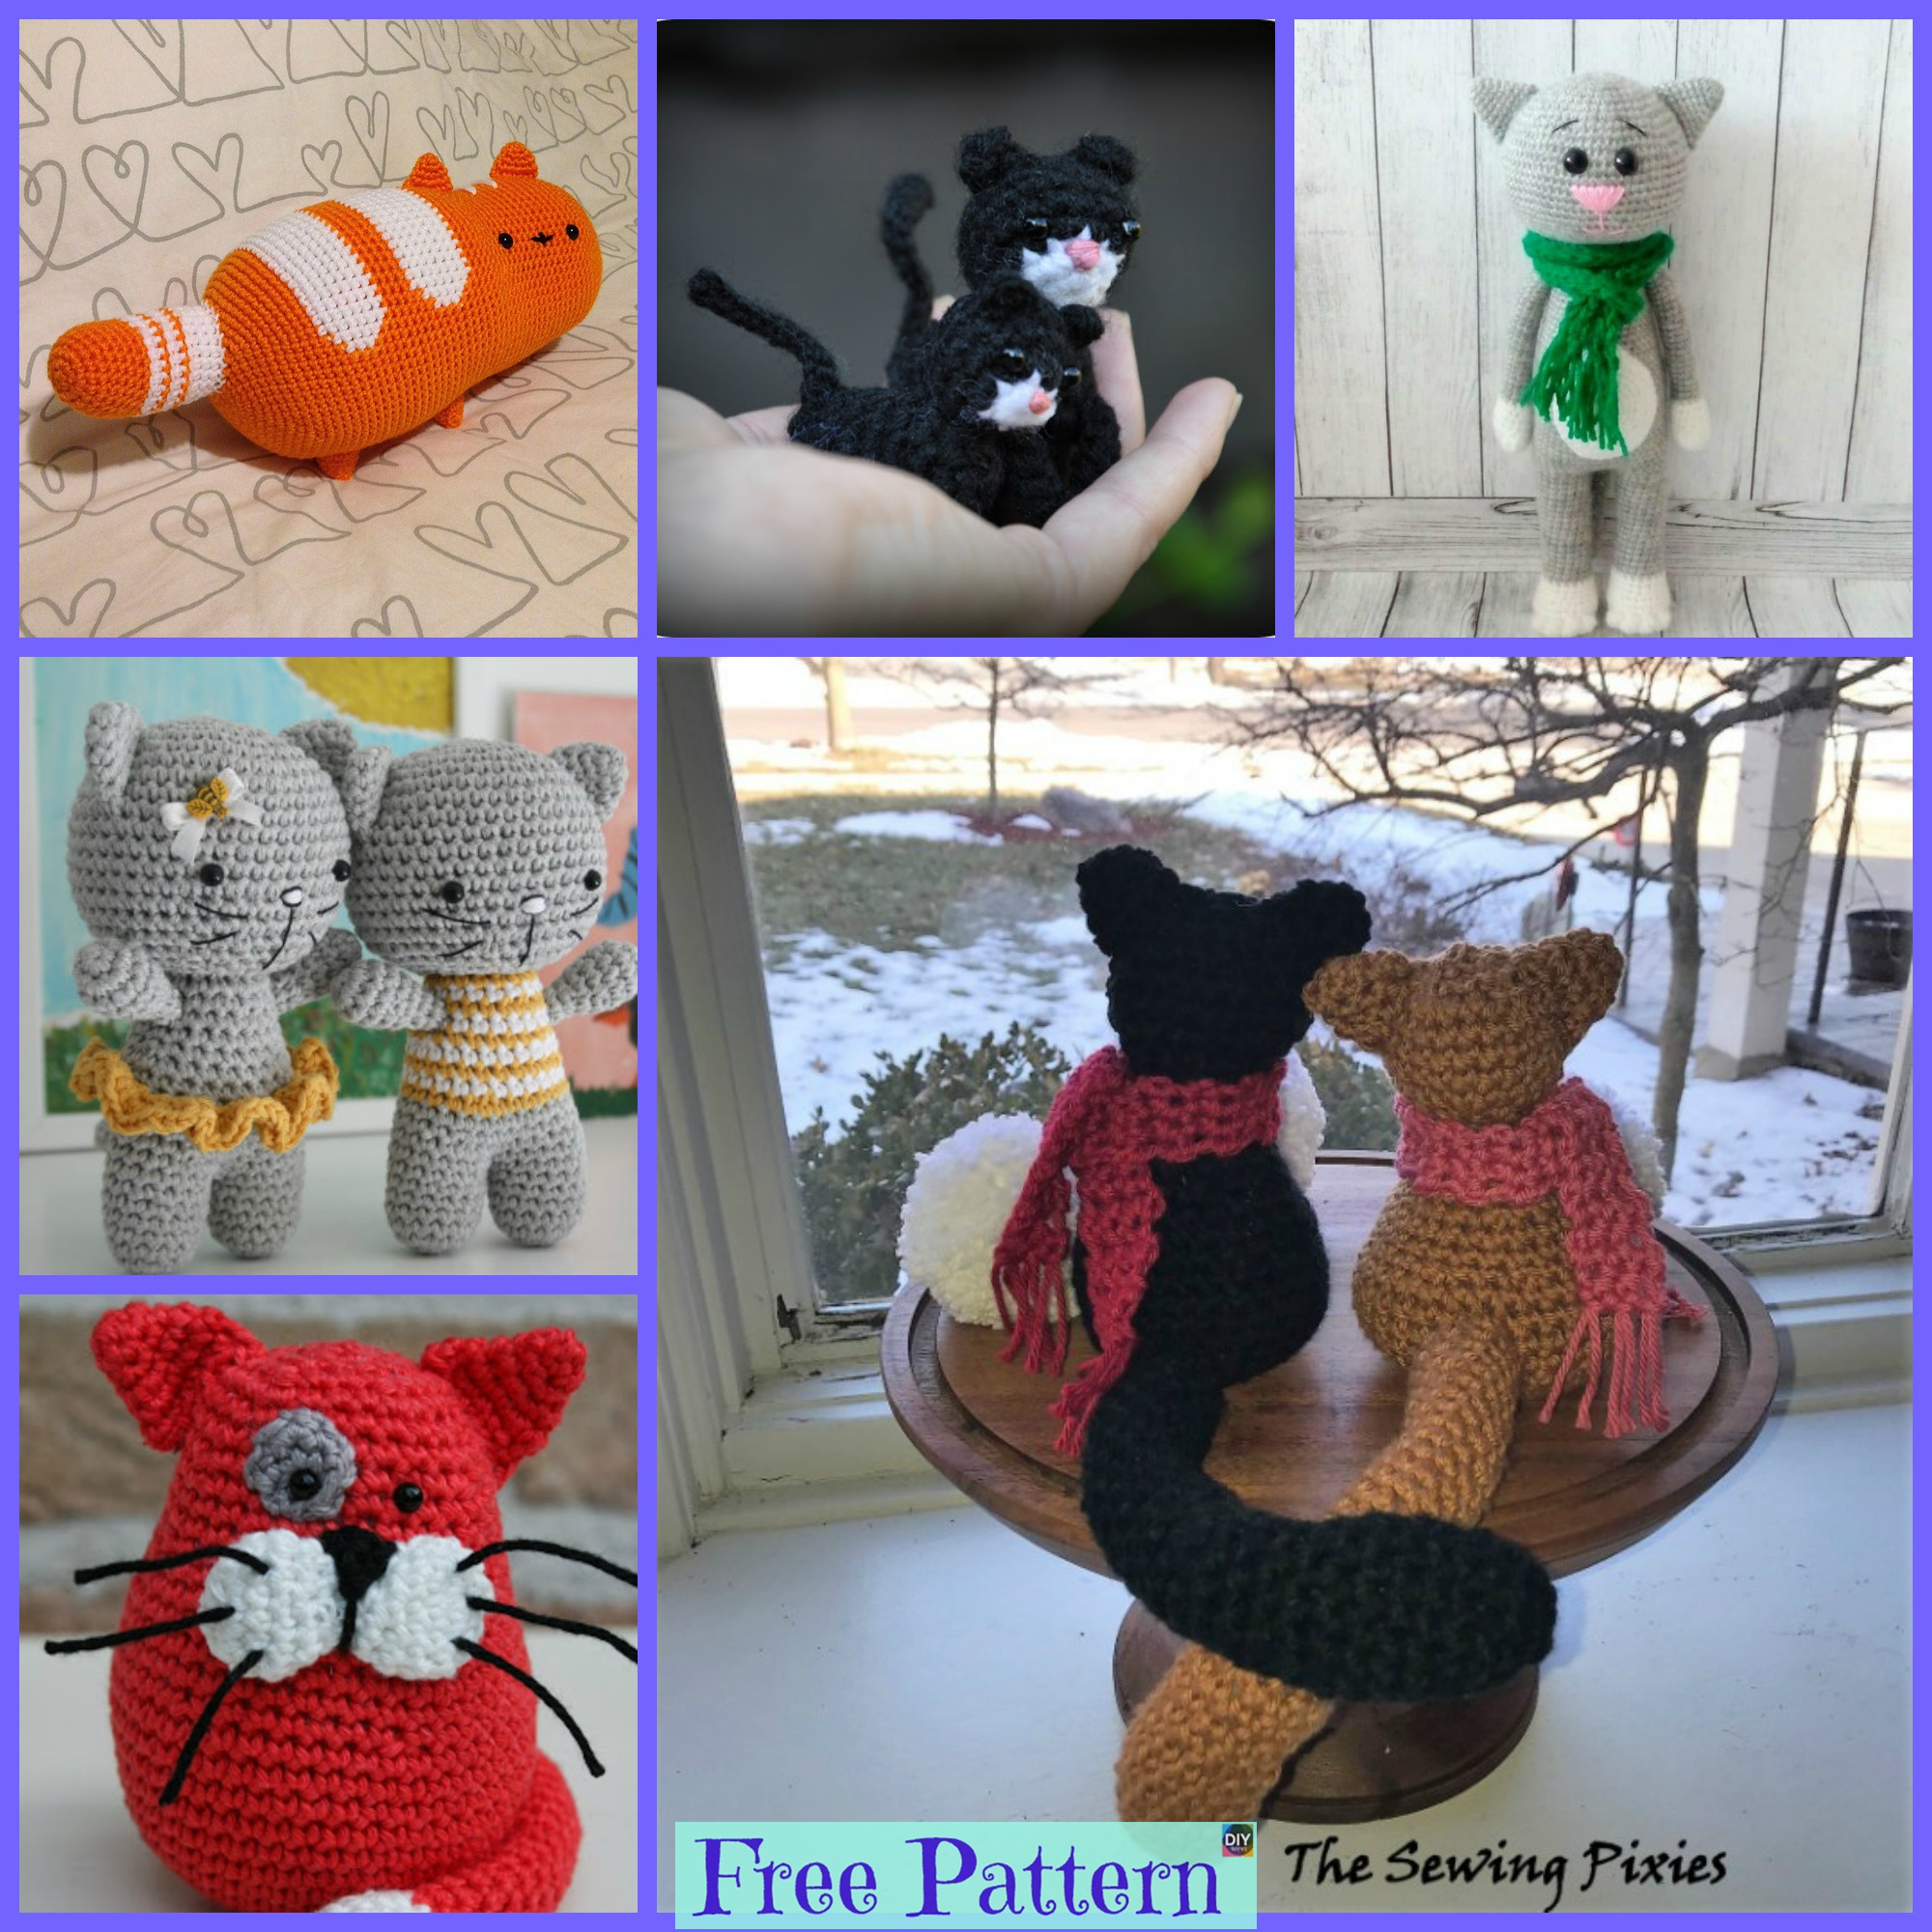 diy4ever-10 Crochet Cats Home Decor Free Patterns